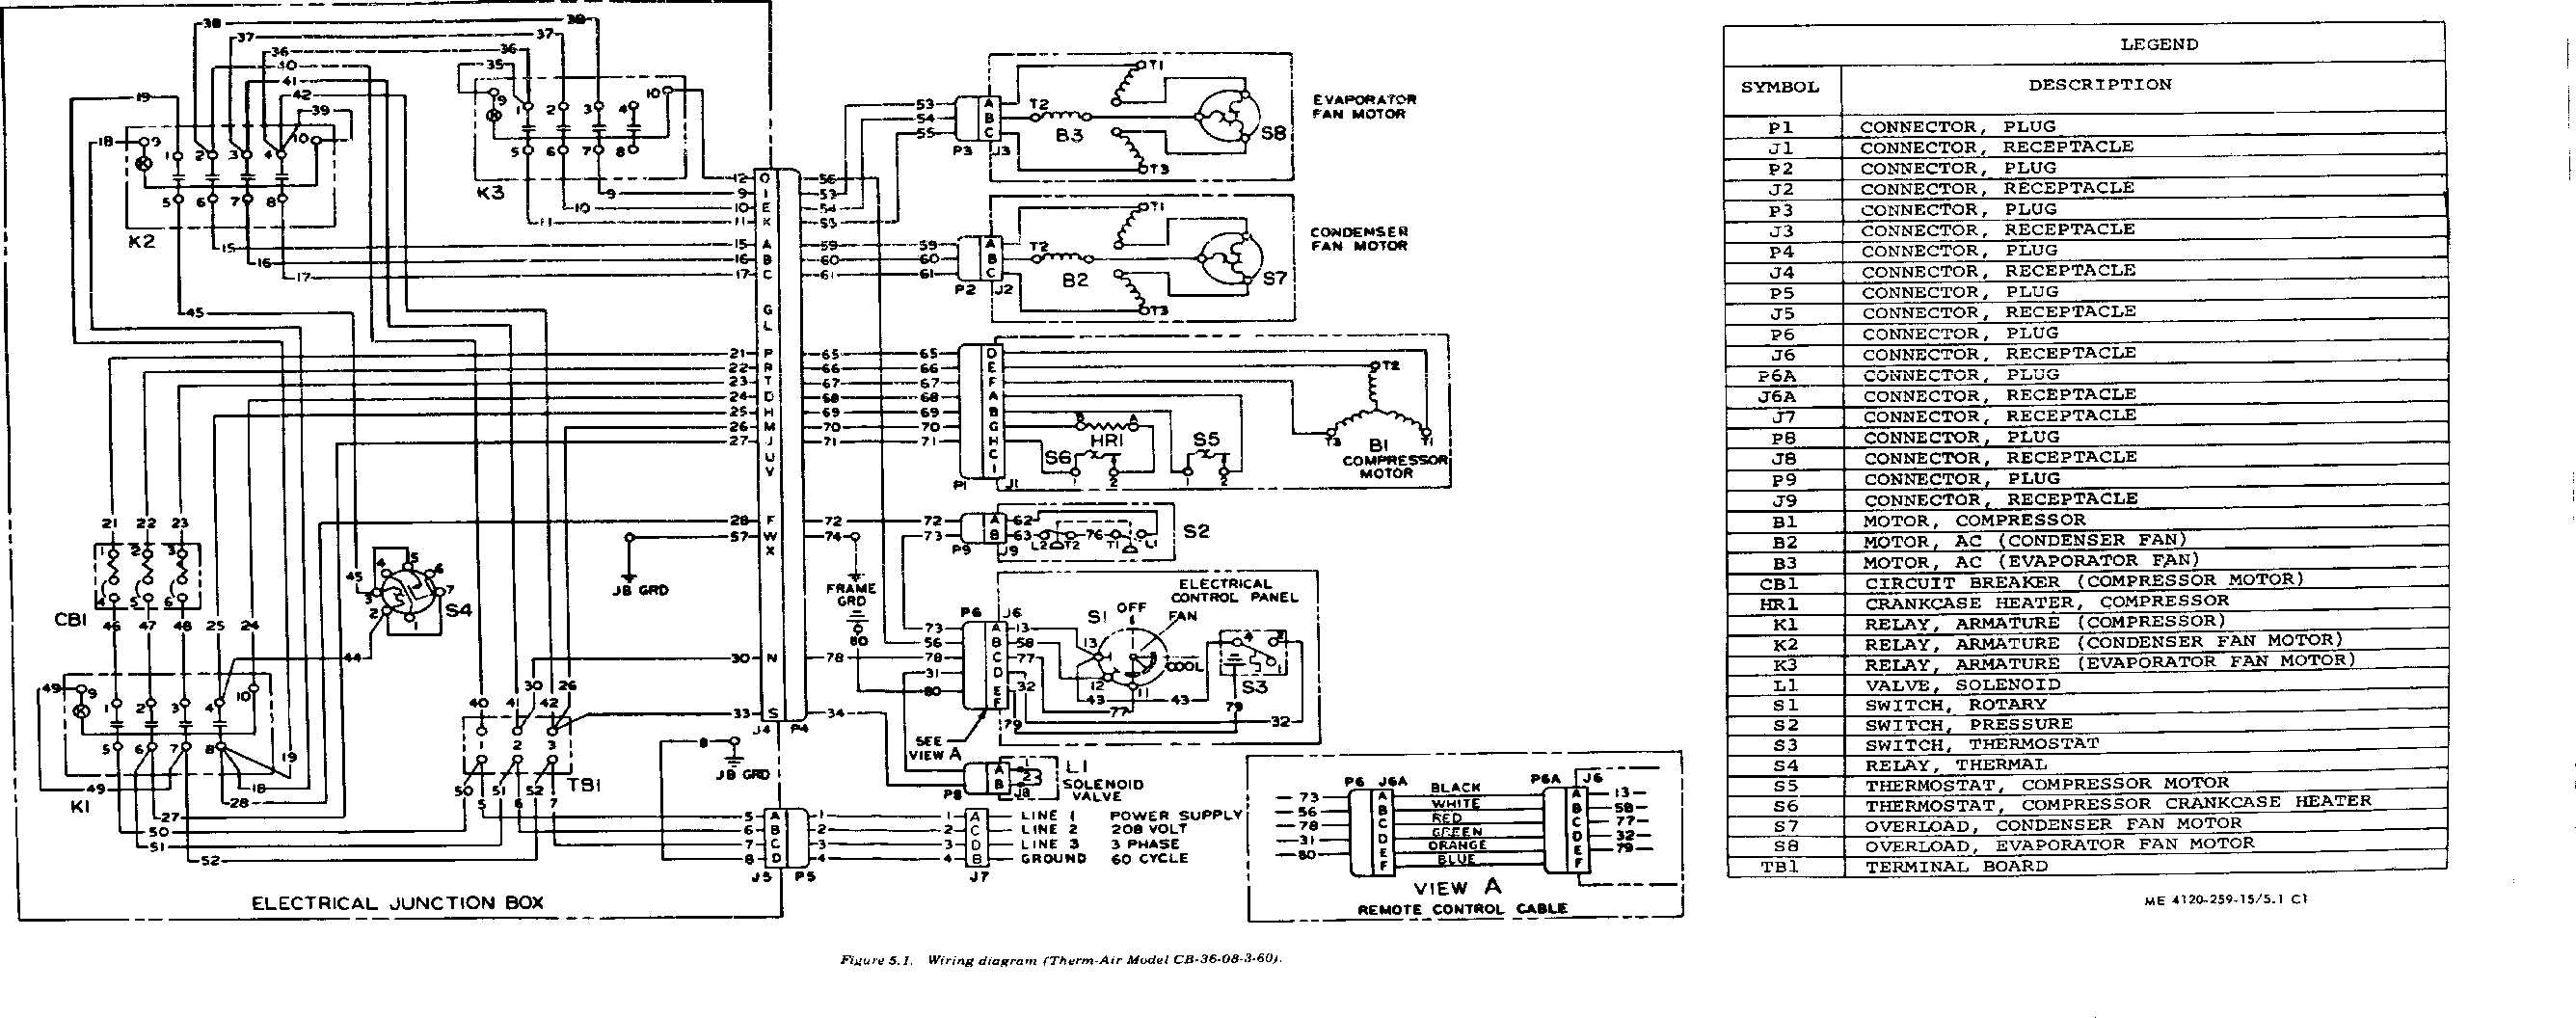 outside ac unit wiring diagram gallery. Black Bedroom Furniture Sets. Home Design Ideas